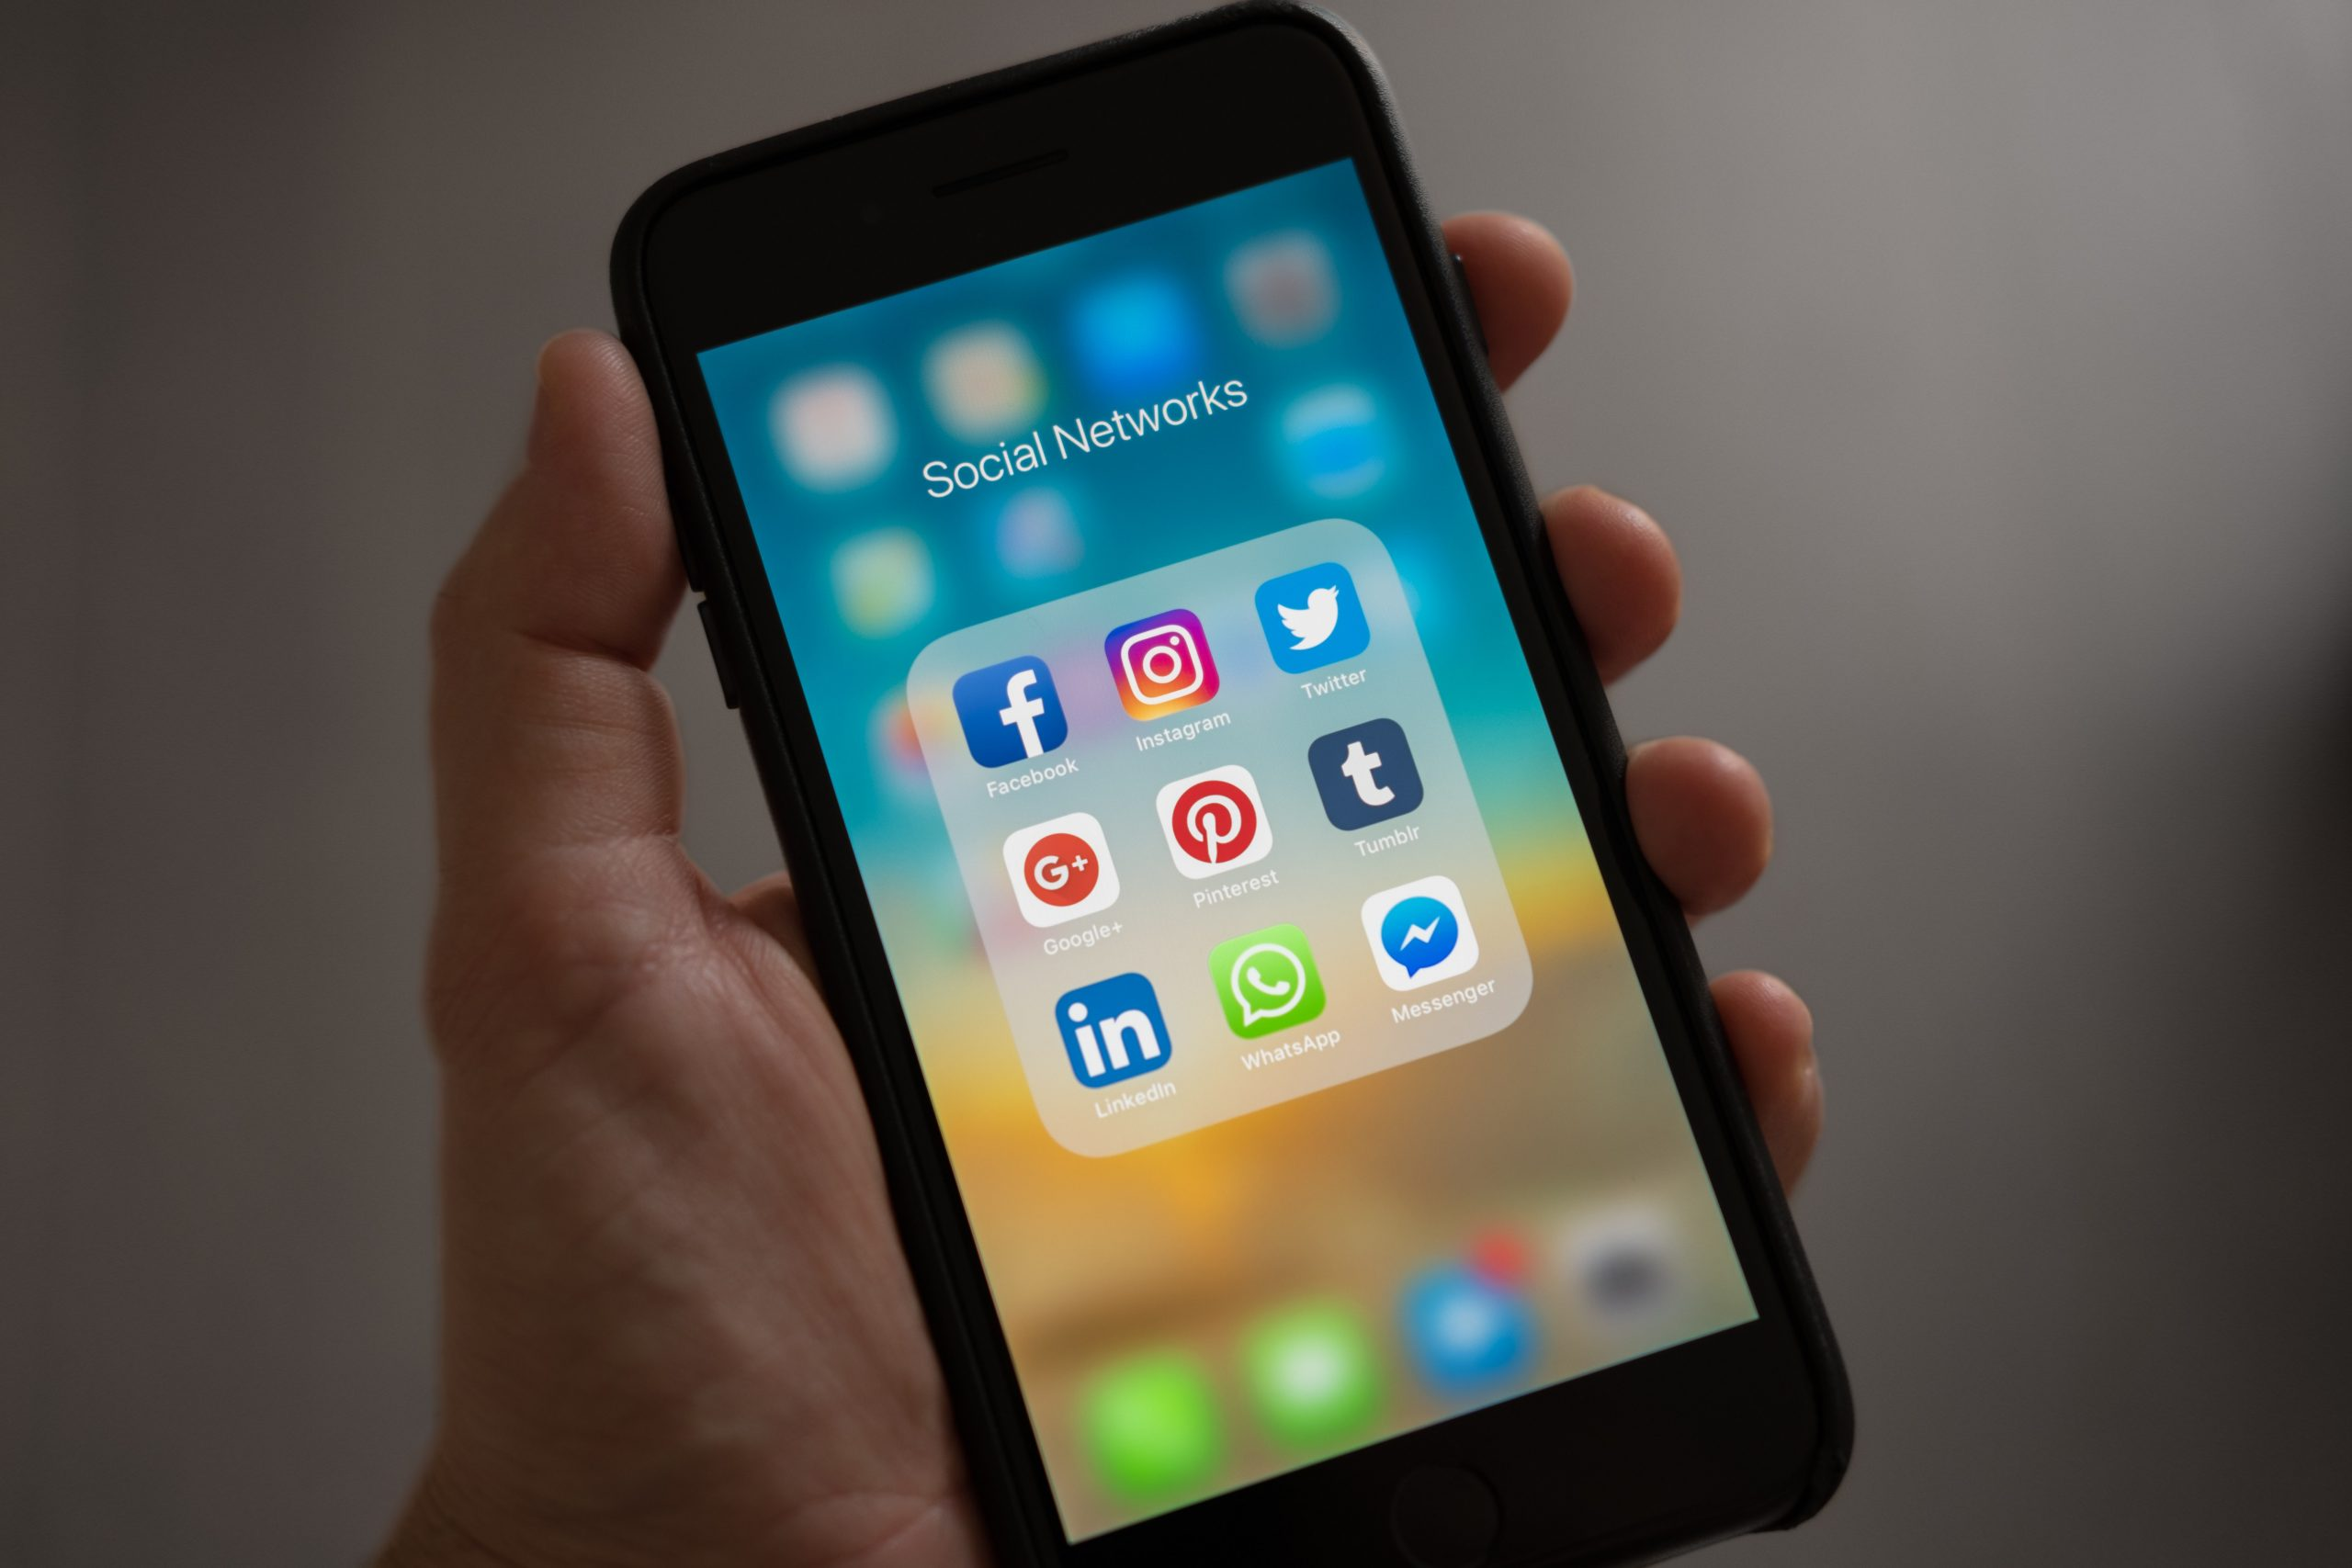 an iPhone with social networking apps